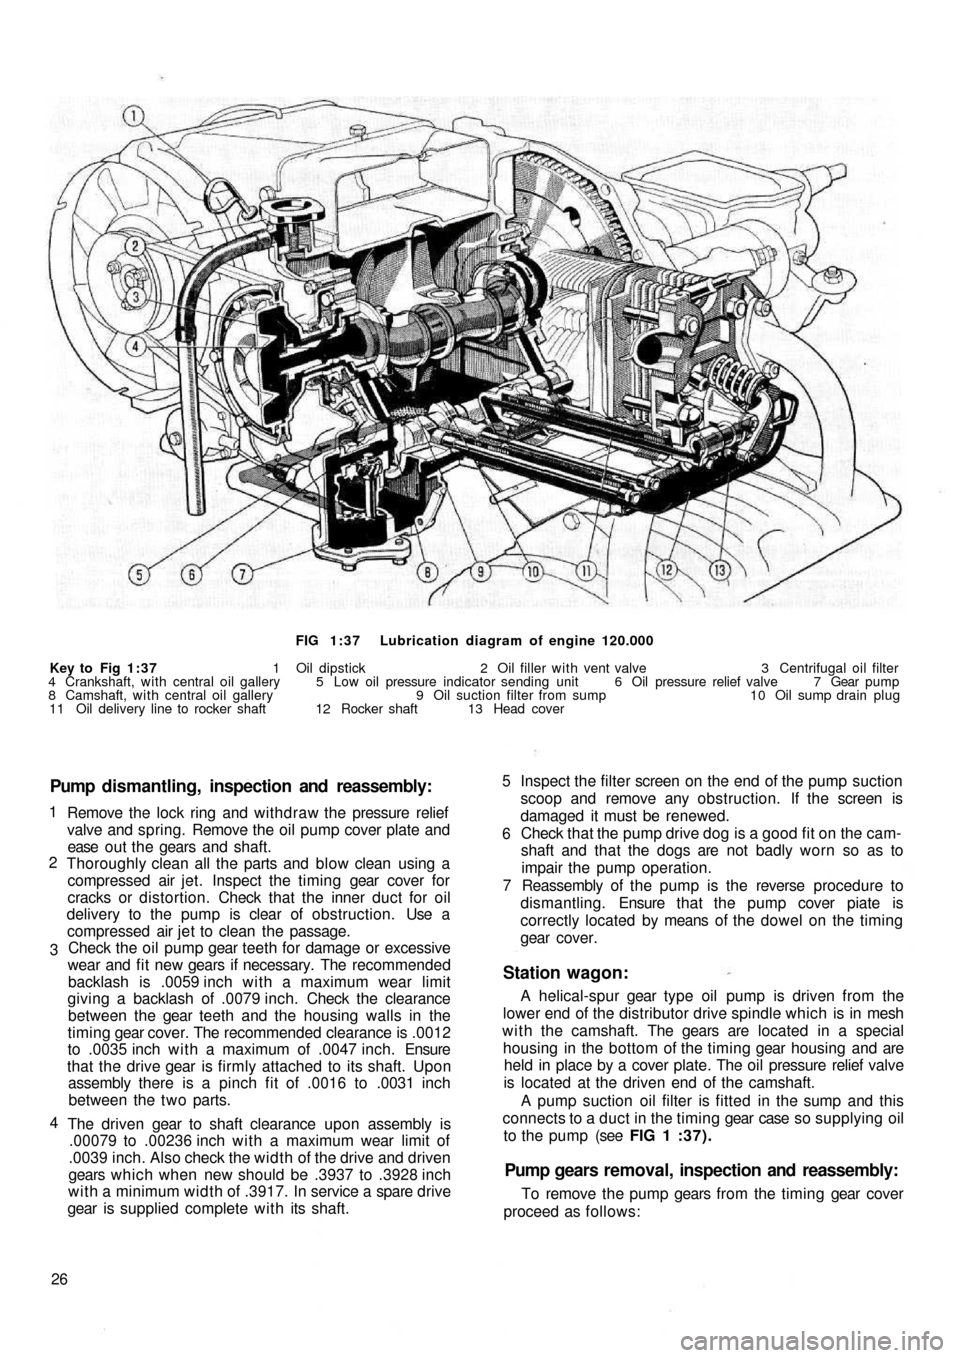 Fiat 500 Abarth Engine Diagram. Fiat. Auto Wiring Diagram